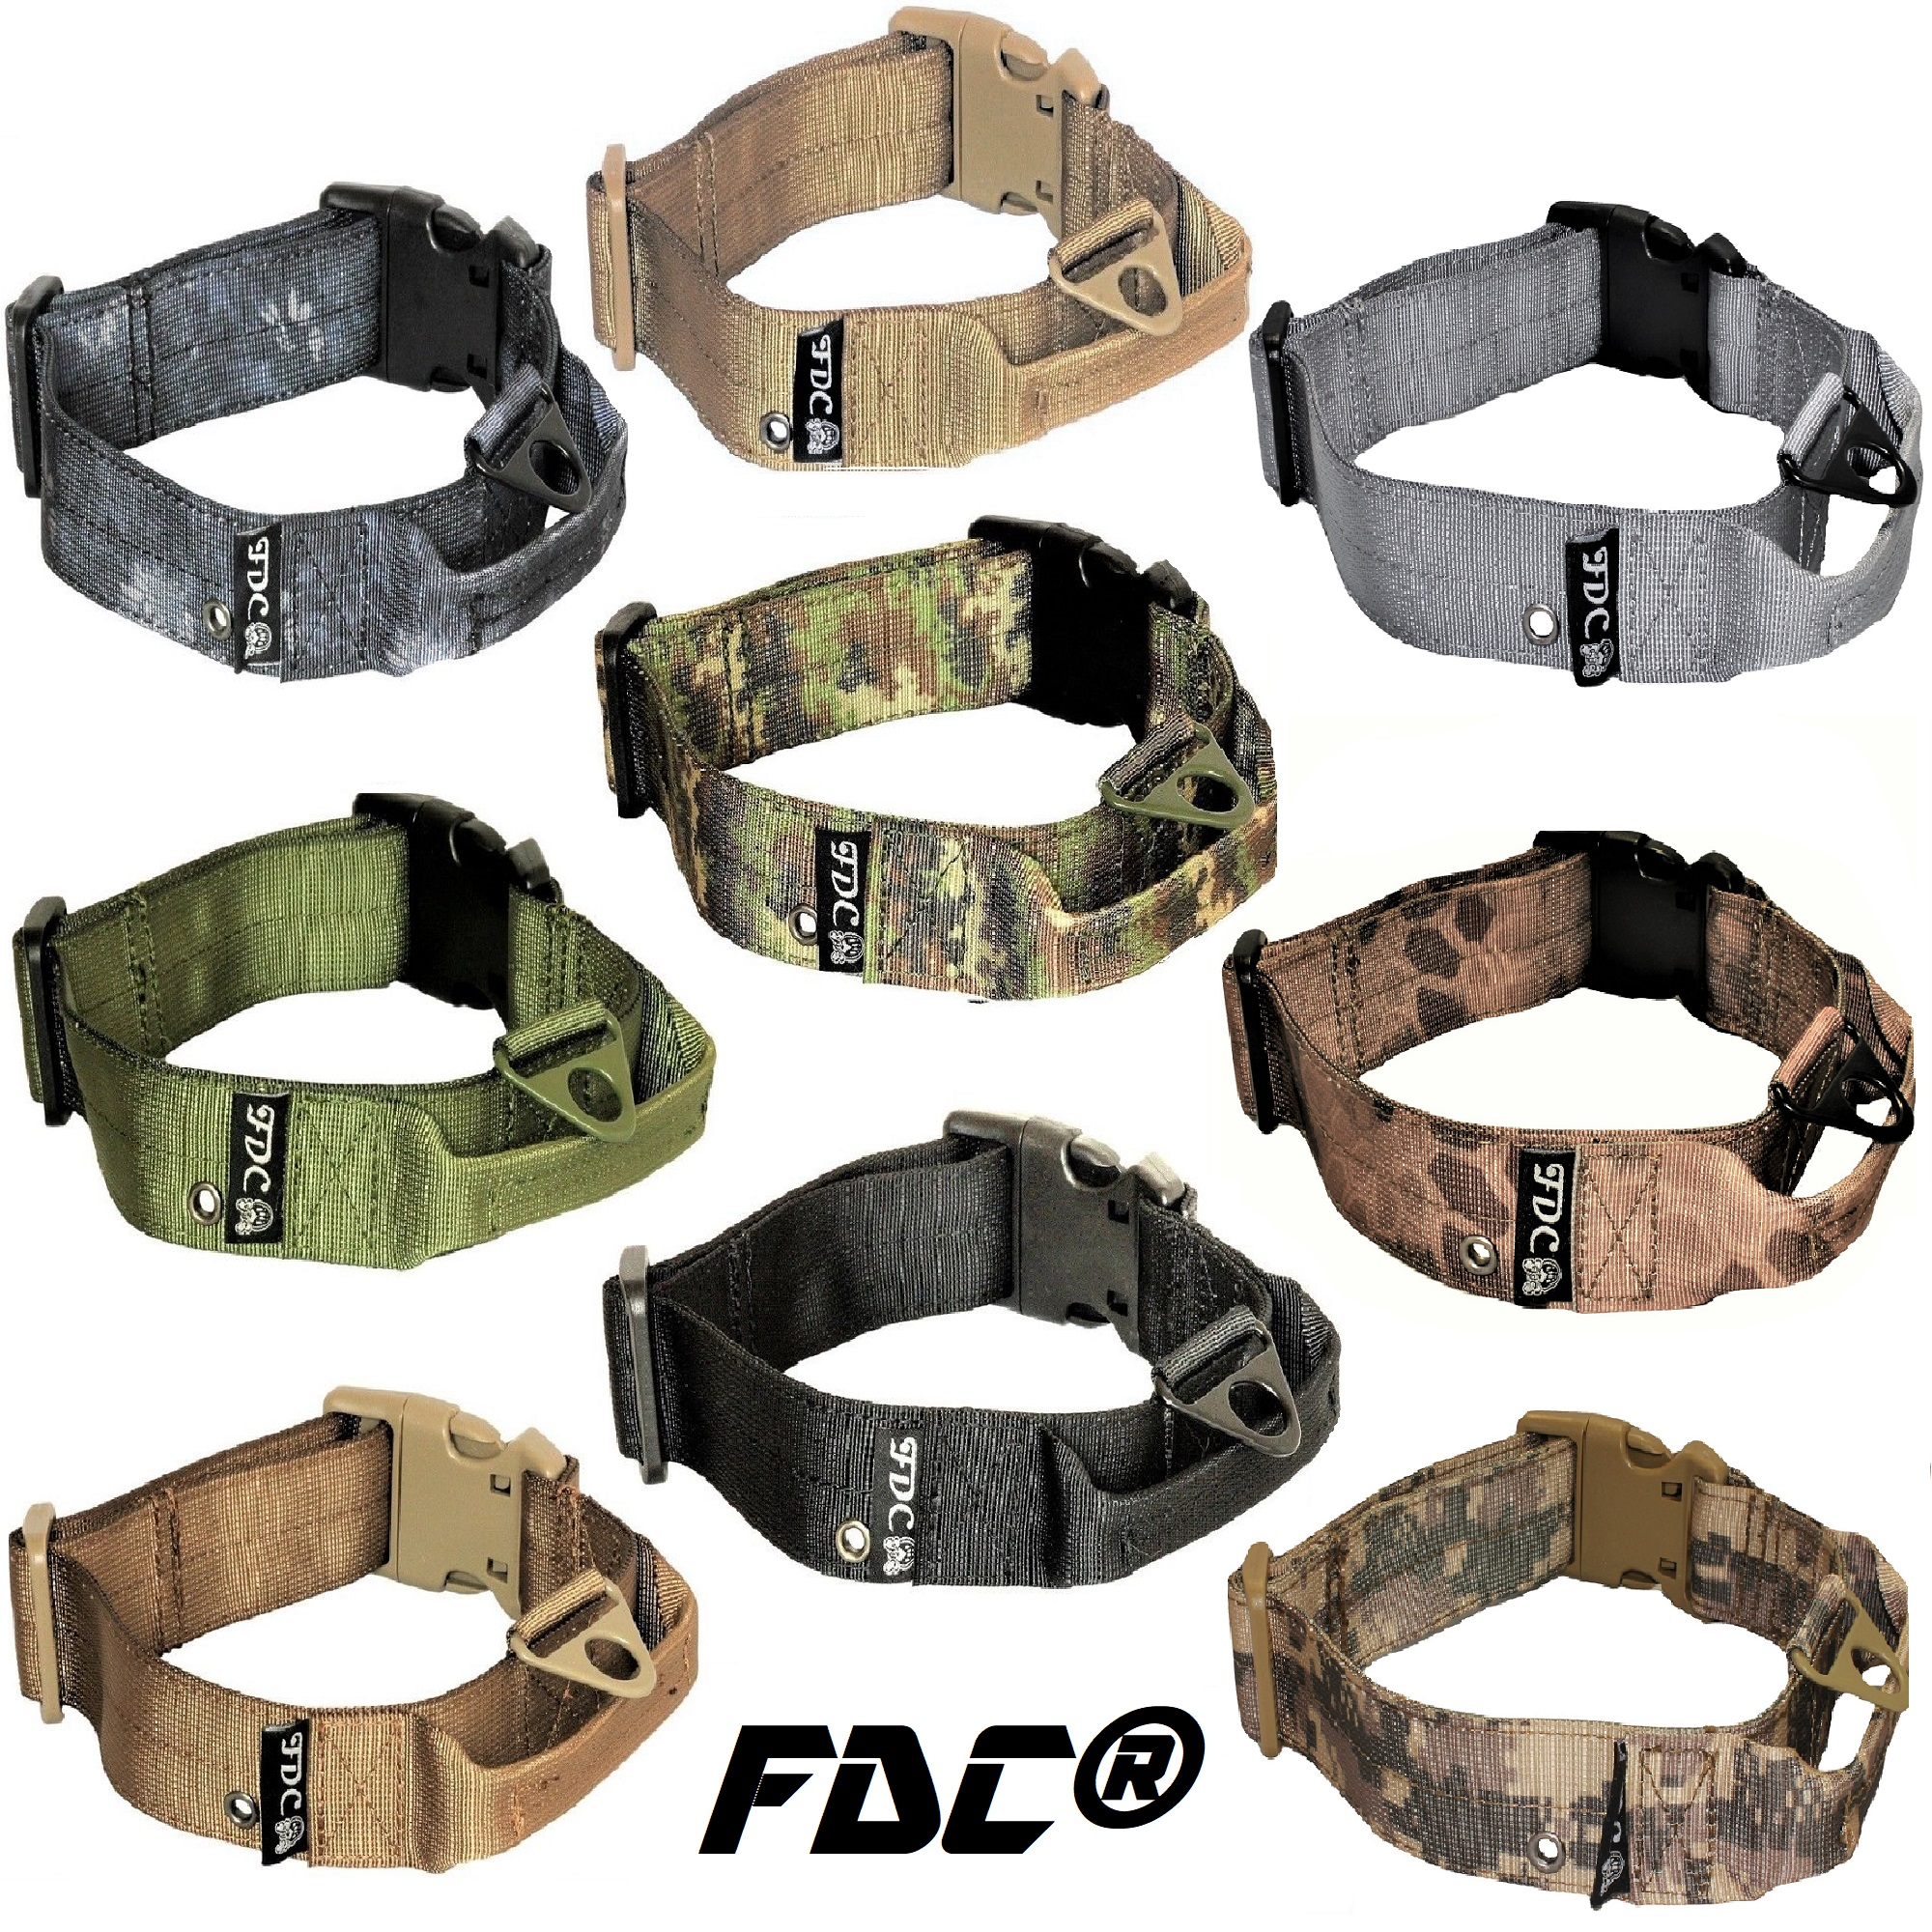 "HEAVY DUTY Military Army Tactical Dog Collar HANDLE Width 1.5in Plastic Buckle with TAG HOLE sz M: Neck 12"" - 14"""